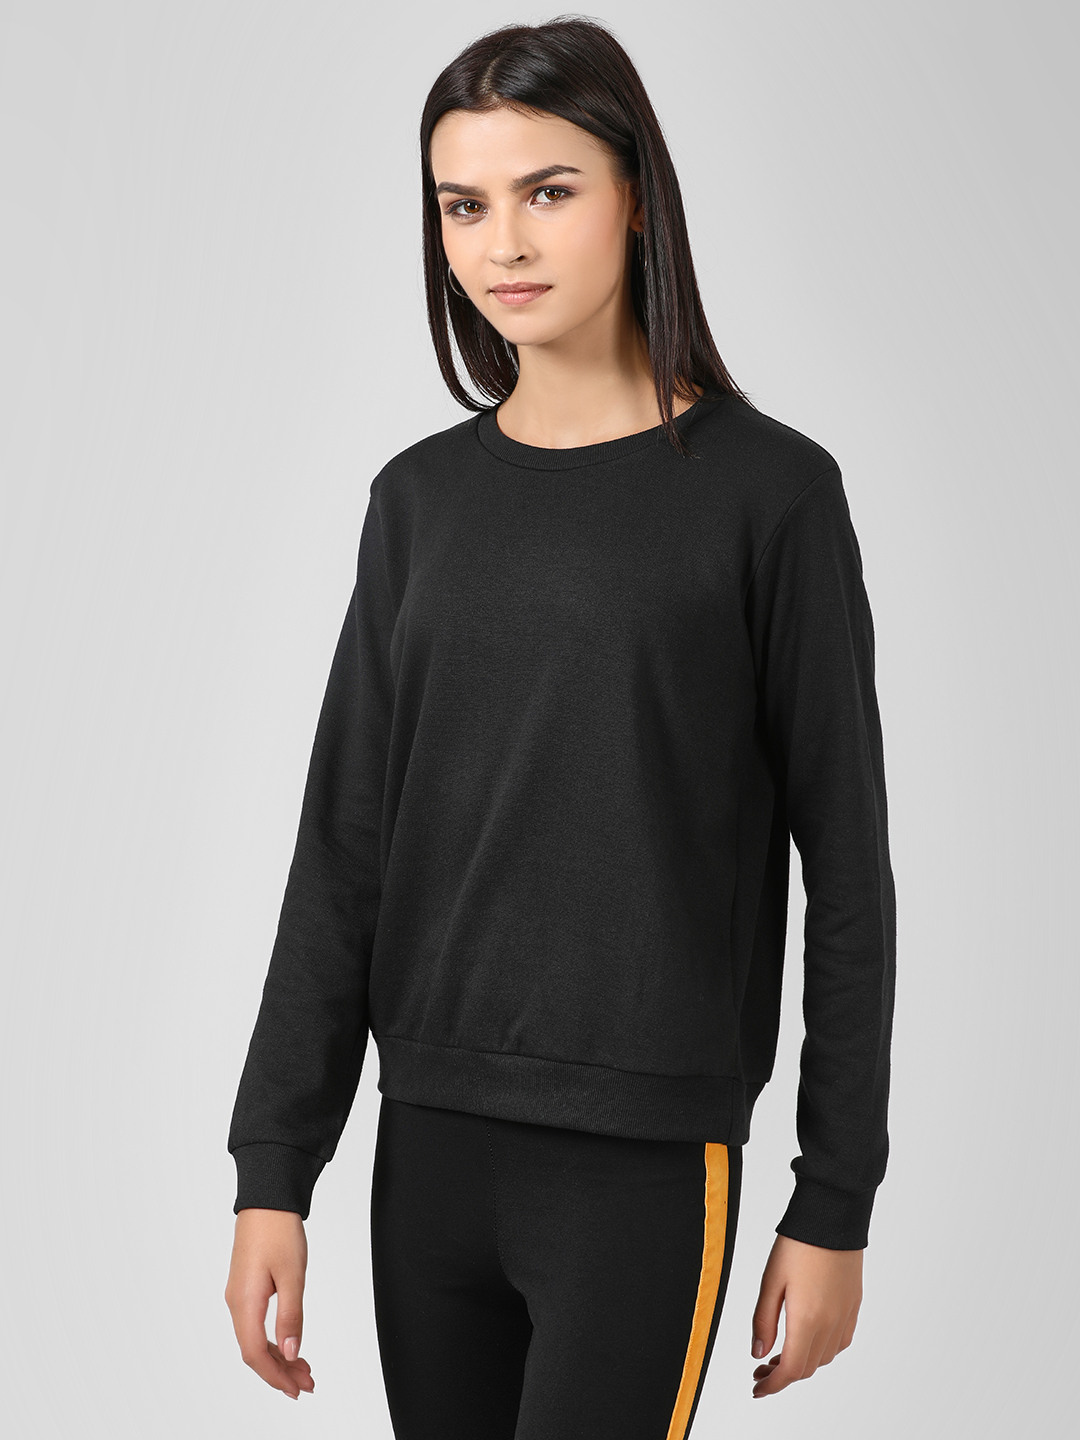 Brave Soul Black Long Sleeve Sweatshirt 1